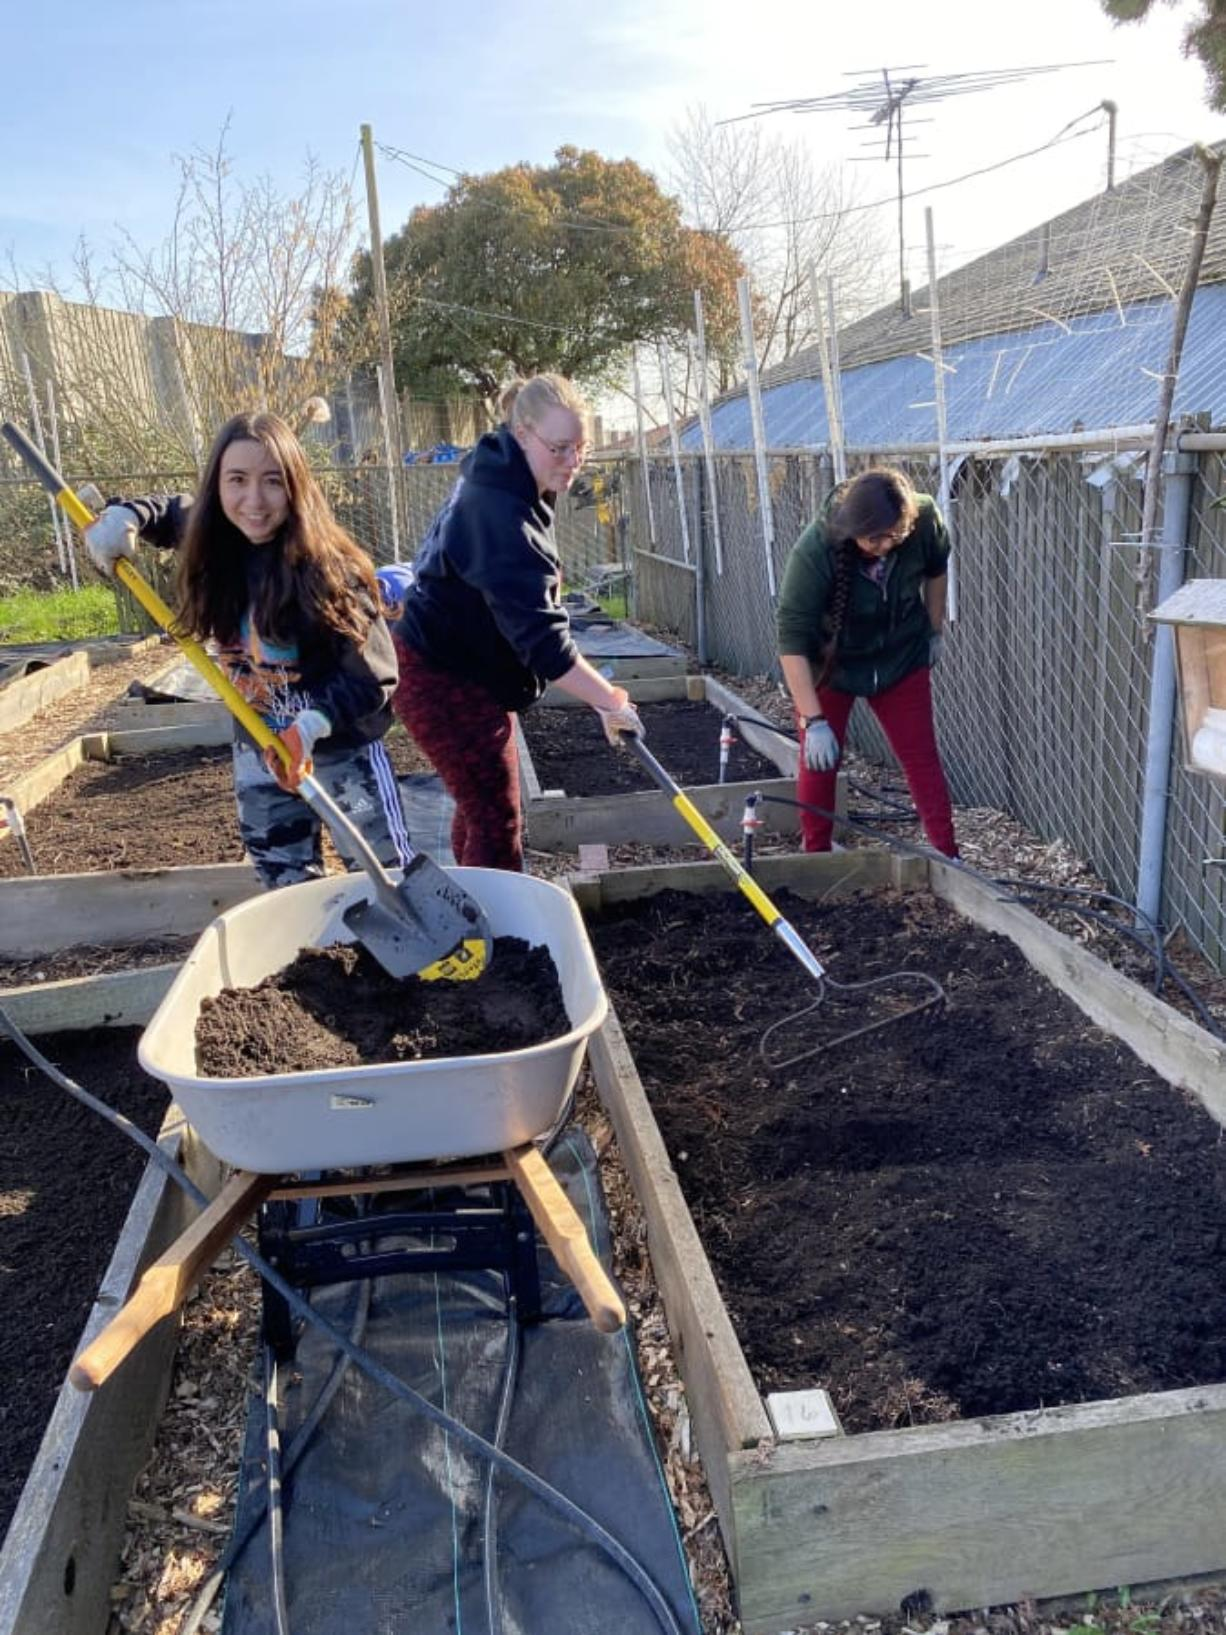 HAZEL DELL: From left, Karmia Keffer, Megan Ulrich, and Deborah Cronemeyer work at the Hazel Dell School and Community Garden. Thirty-seven Clark College student made a difference by helping prepare garden for spring.